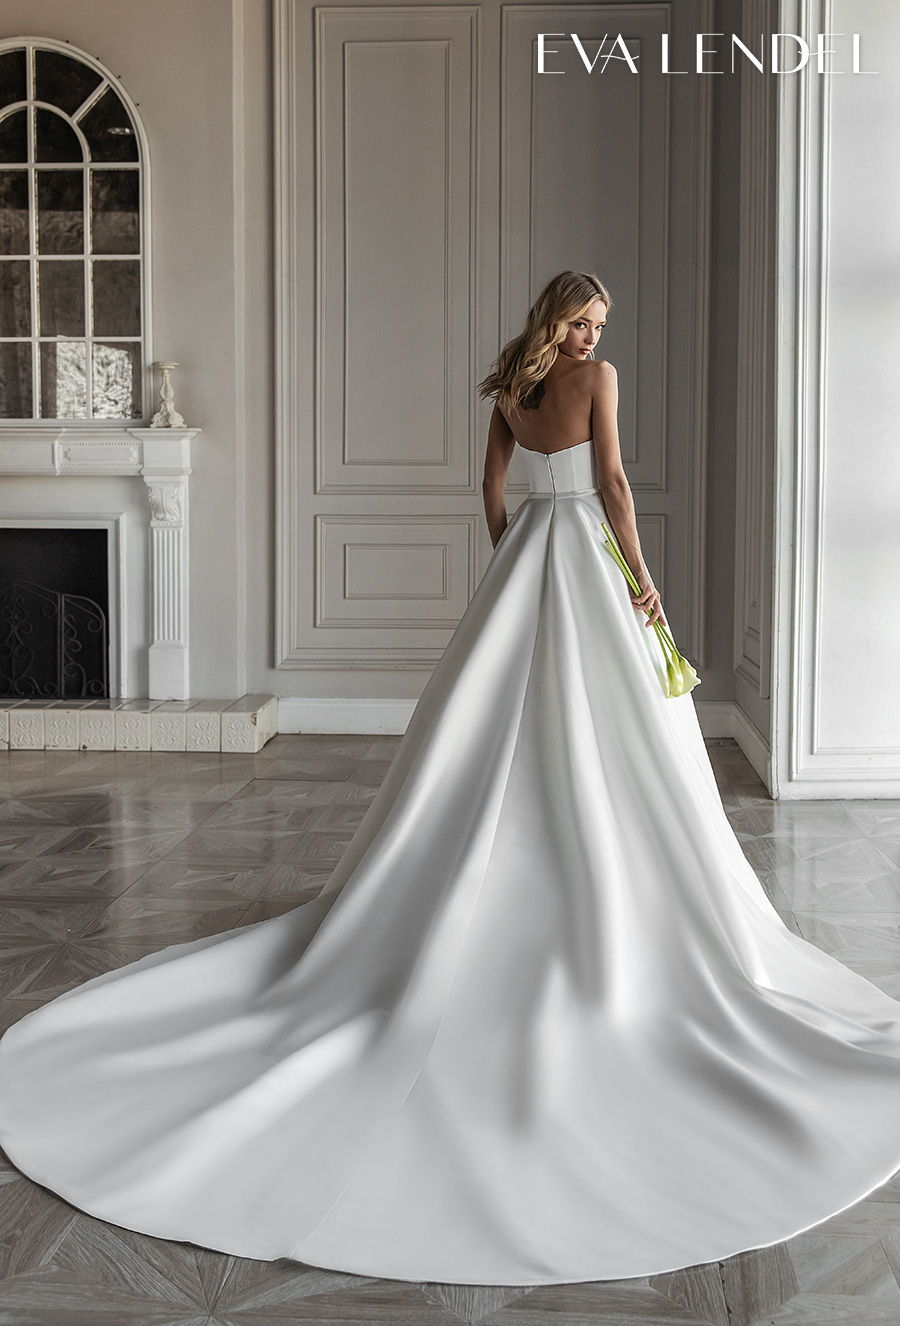 eva lendel 2021 bridal strapless sweetheart neckline simple button front romantic a  line wedding dress with pockets mid back royal train (diora) bv